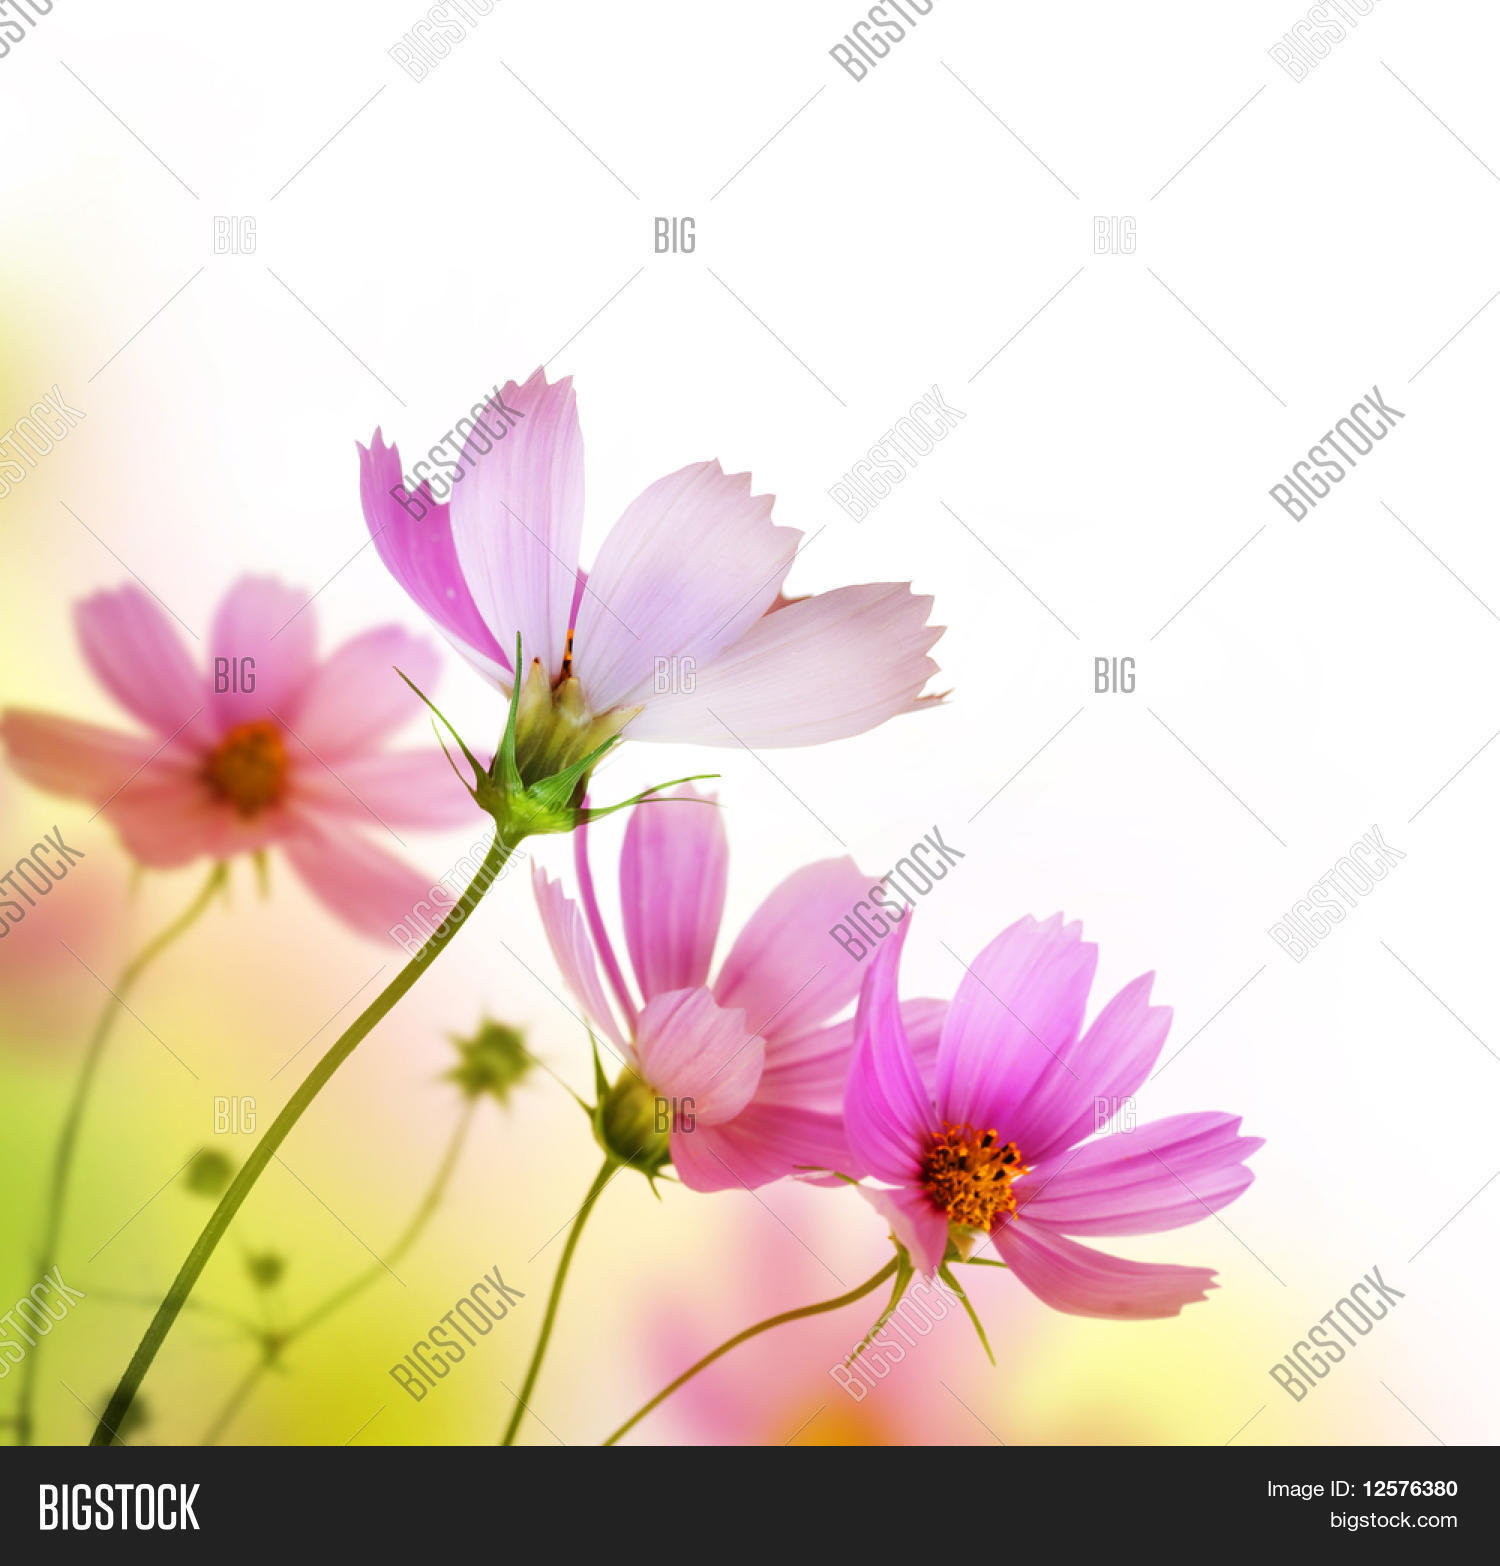 Beautiful Floral Borderflower Design Photo Stock